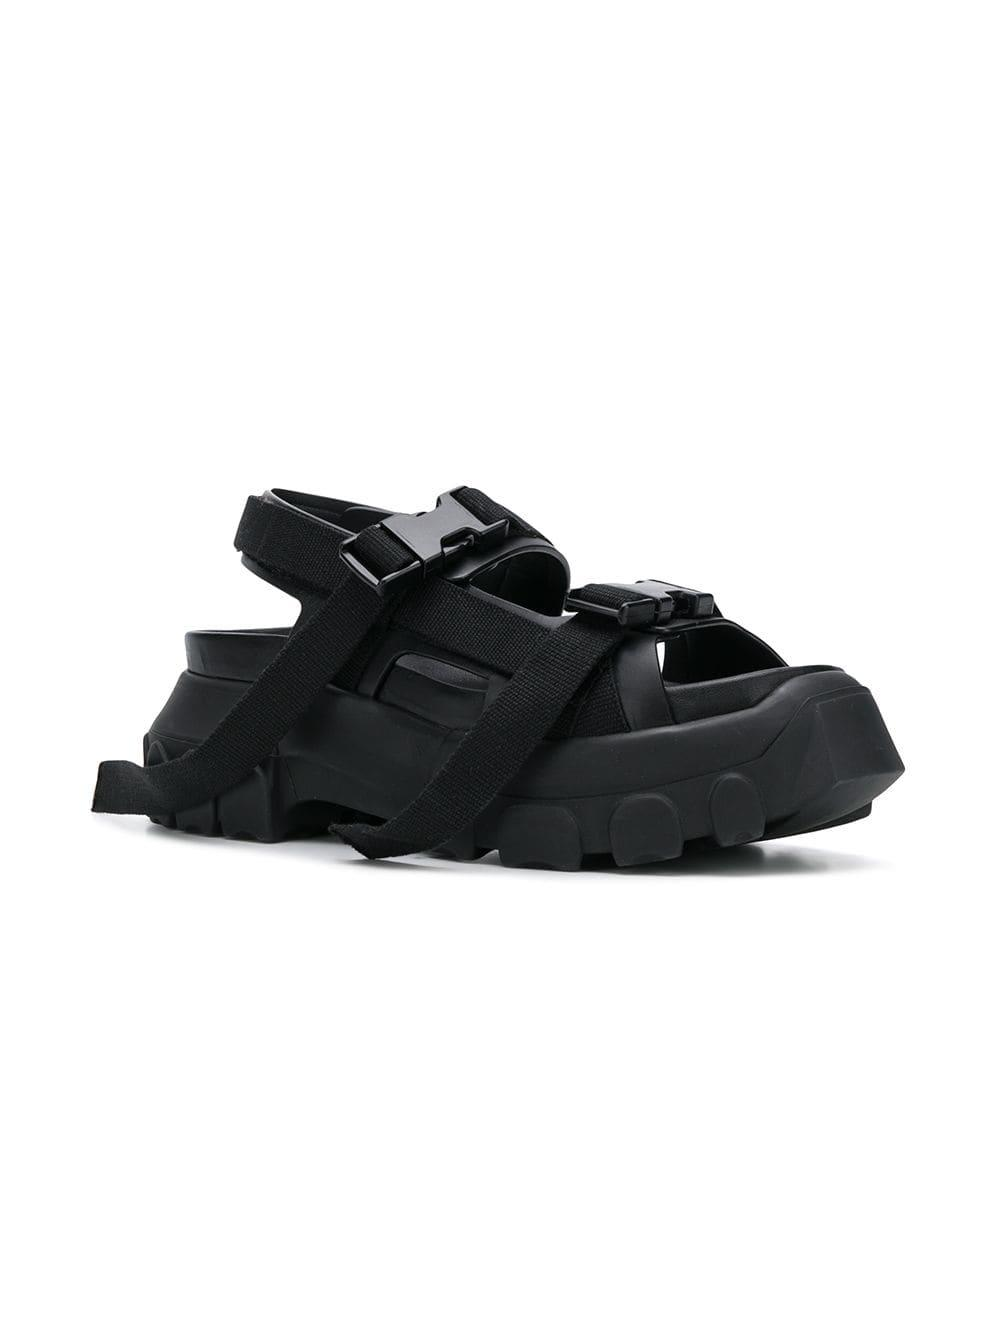 5c7c9be05ef3 Rick Owens Sisyphus Hiking Sandals in Black - Save 47% - Lyst